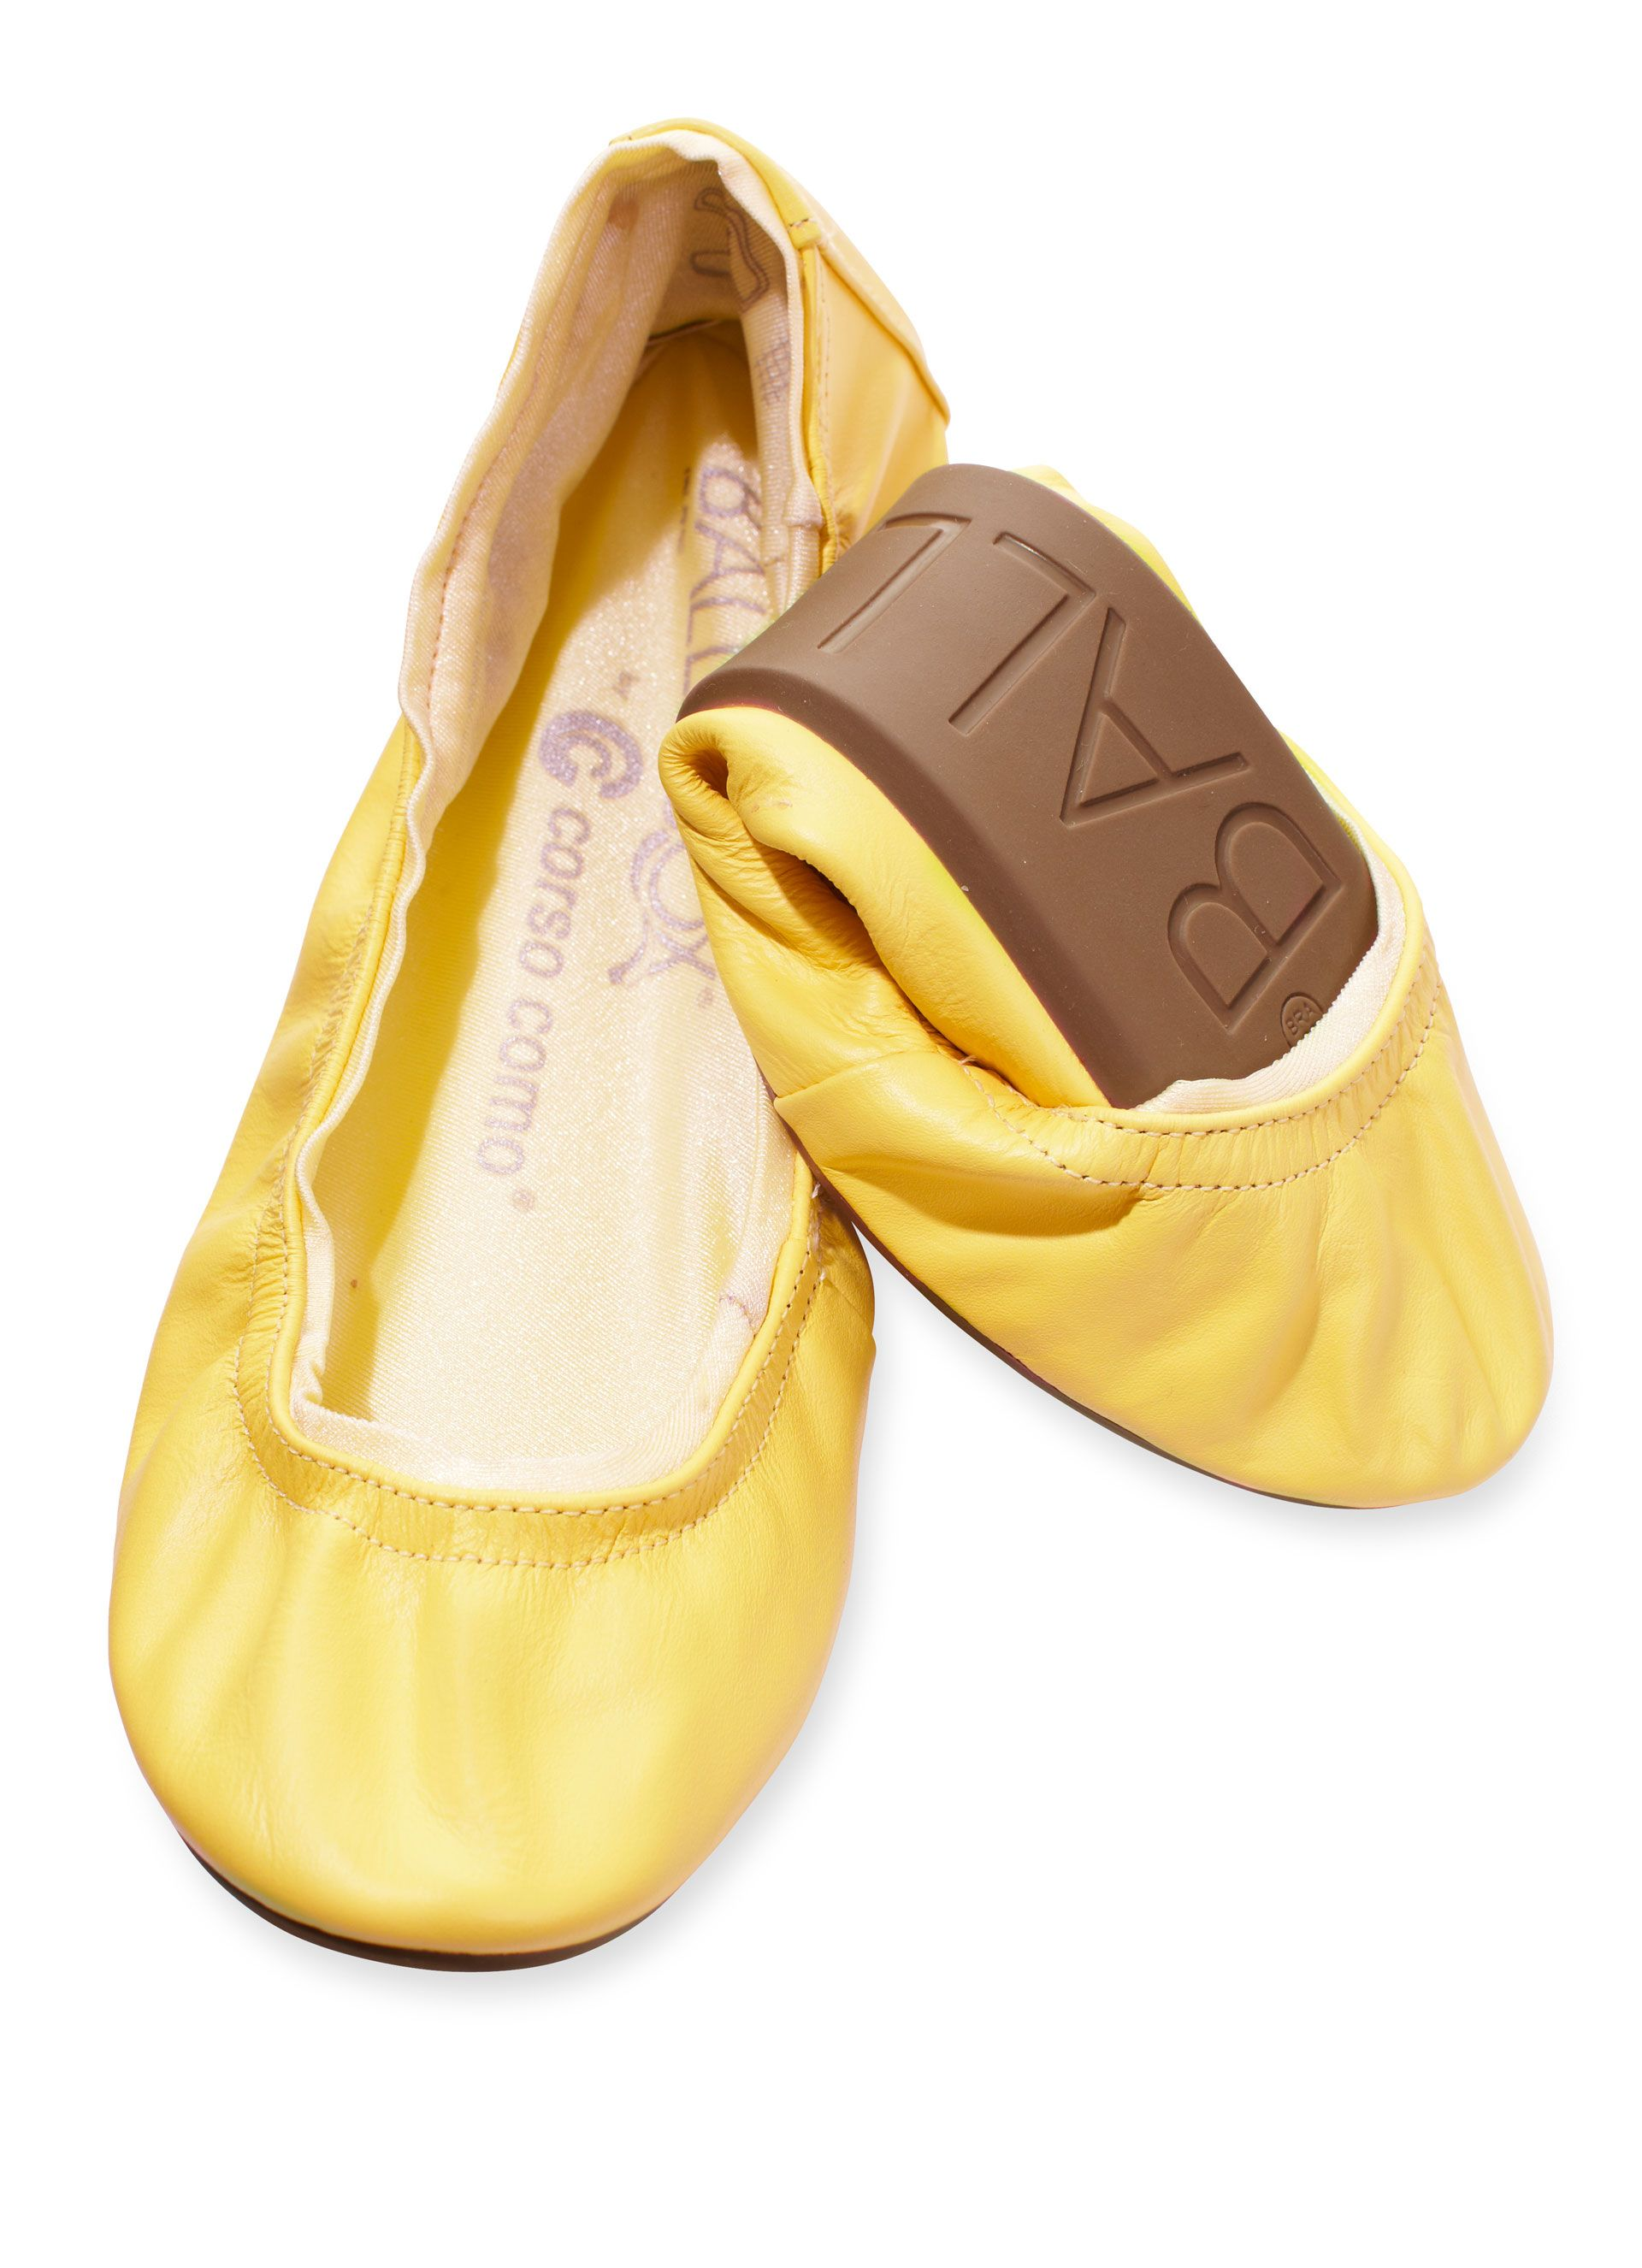 flats most ballet of detailed four for walking the tieks years review travel comforter a after comfortable